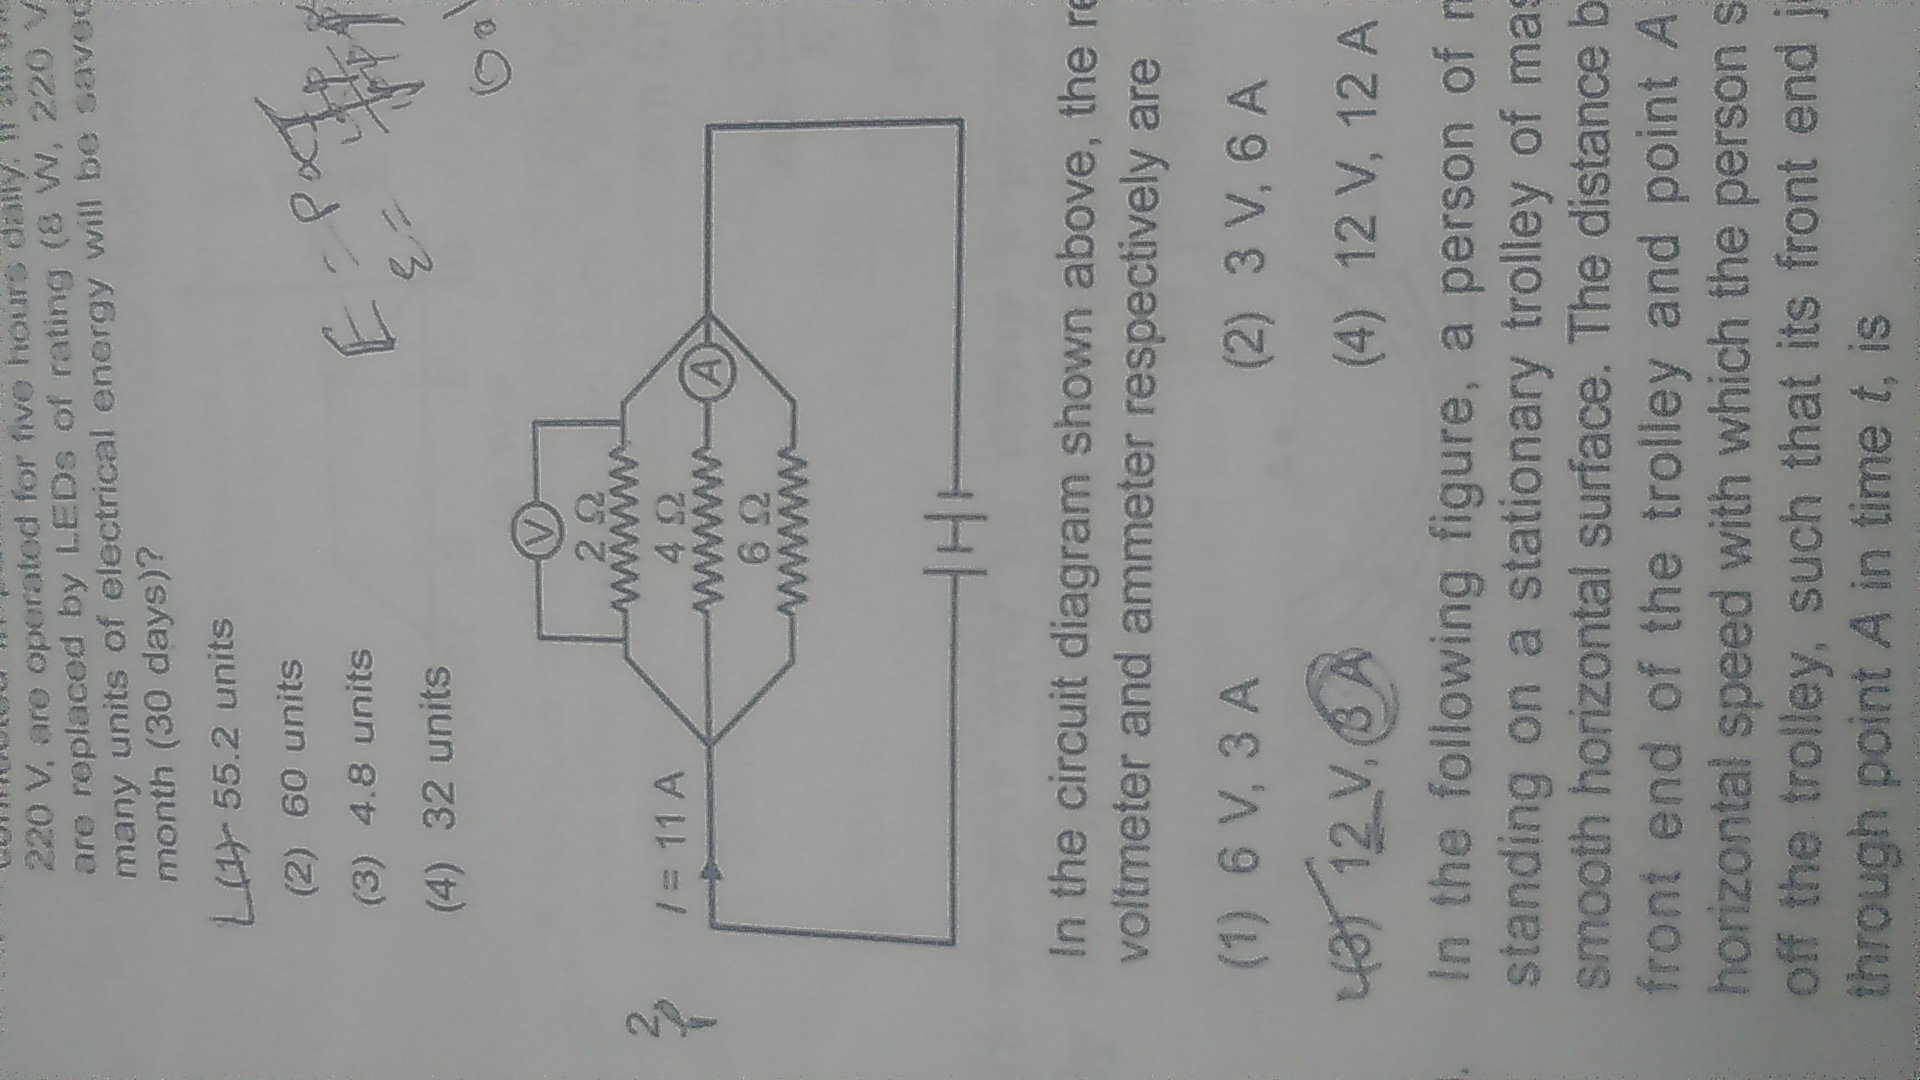 The Circuit Illustration Above Shows How The Circuit Of A Flashlight